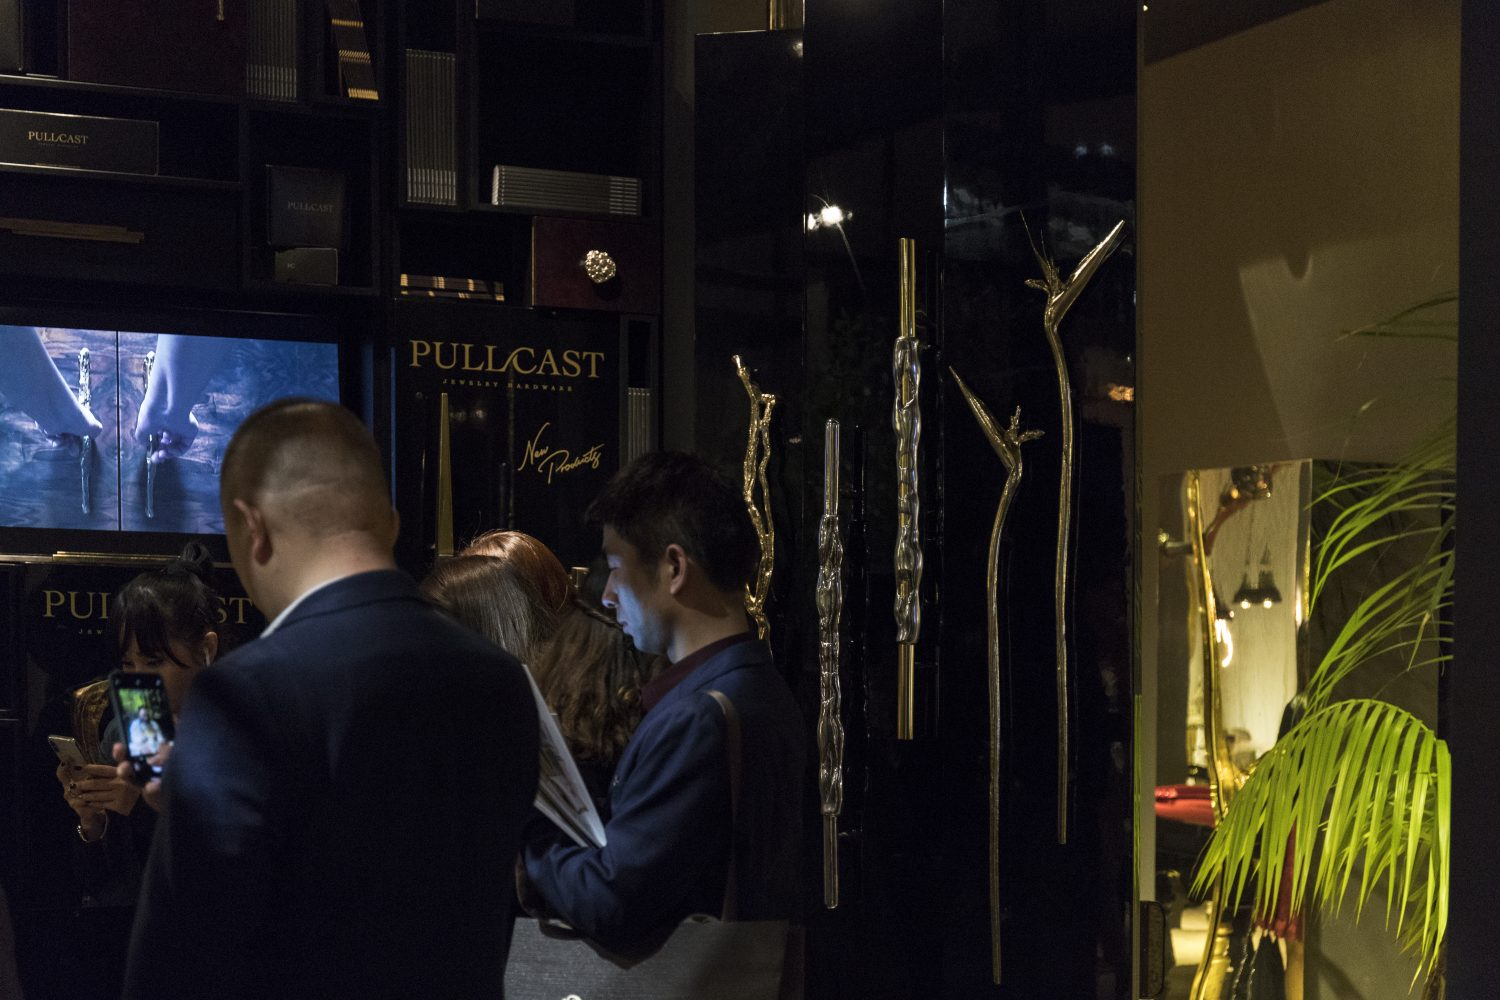 pullcast at Salone del Mobile 2019 salone del mobile 2019 SALONE DEL MOBILE 2019: EVERYTHING THAT YOU ARE MISSING IMG 1261 1